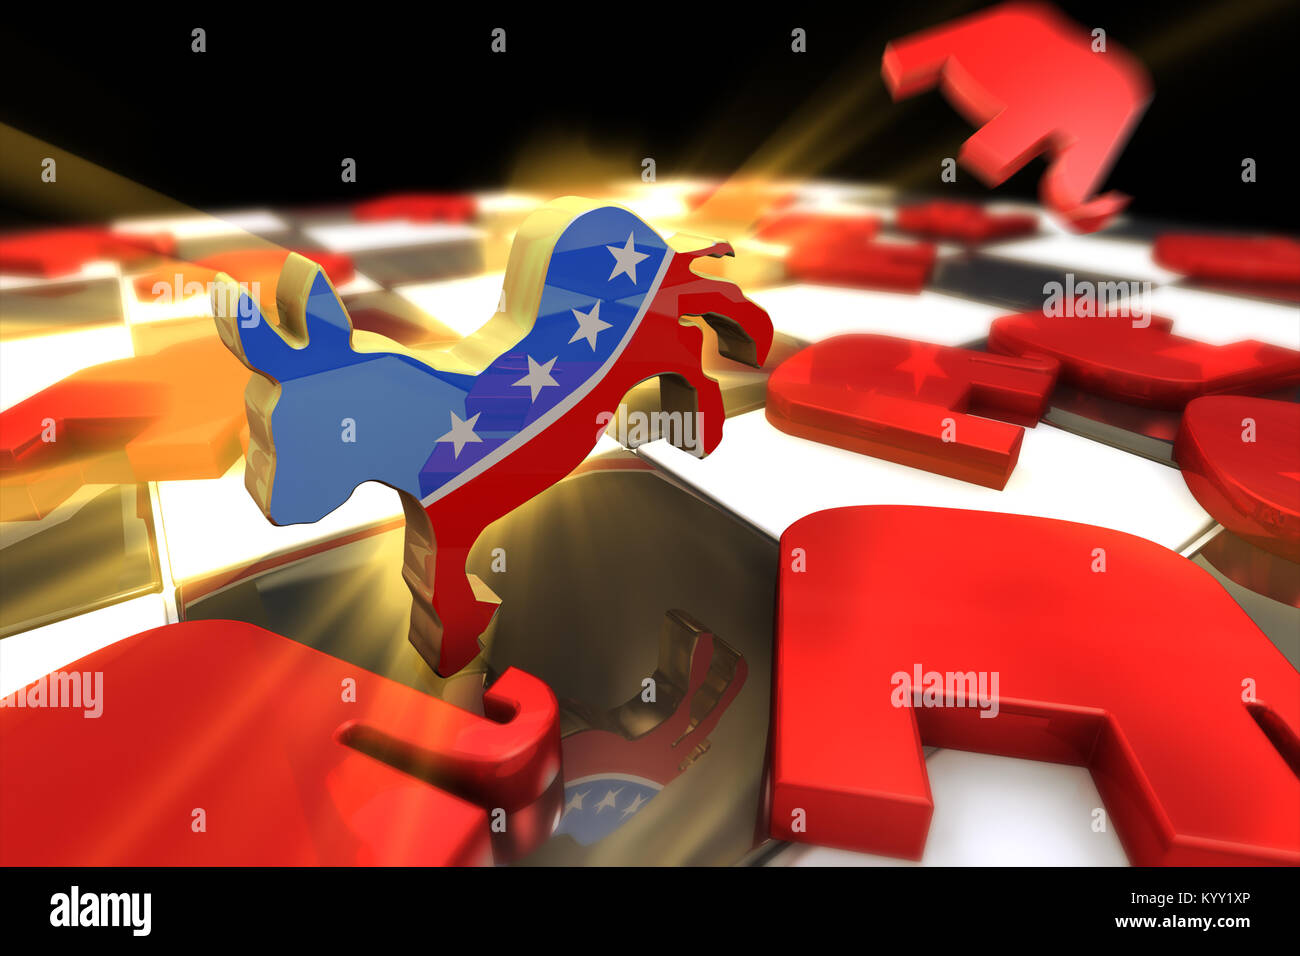 Usa Political Parties Symbols Stock Photos Usa Political Parties